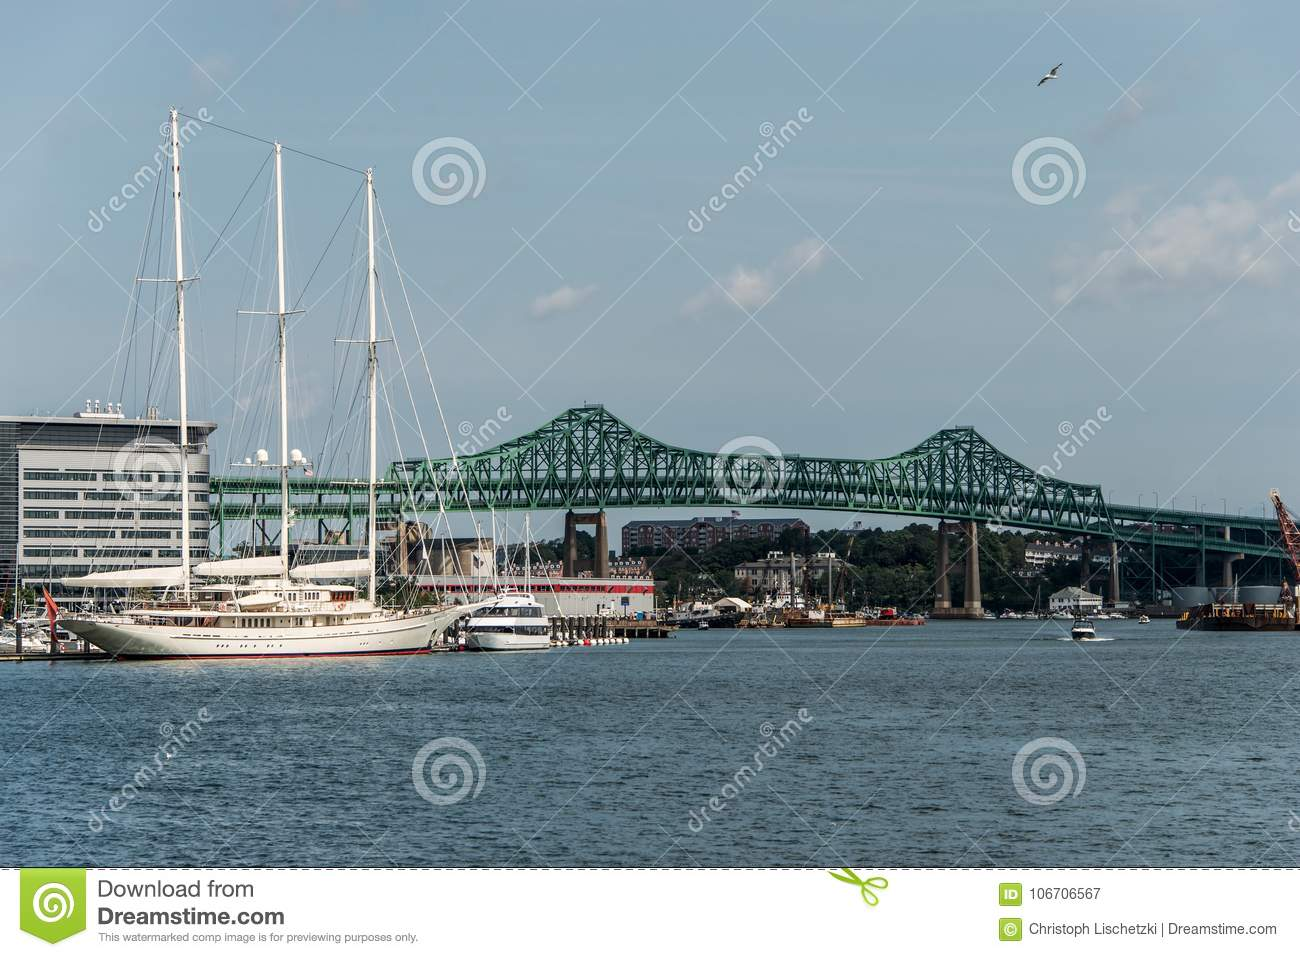 Download Tobin Bridge In Boston MA, USA And The Athena 295 Foot Yacht Docked At The Boston Harbor Stock Image - Image of america, boat: 106706567